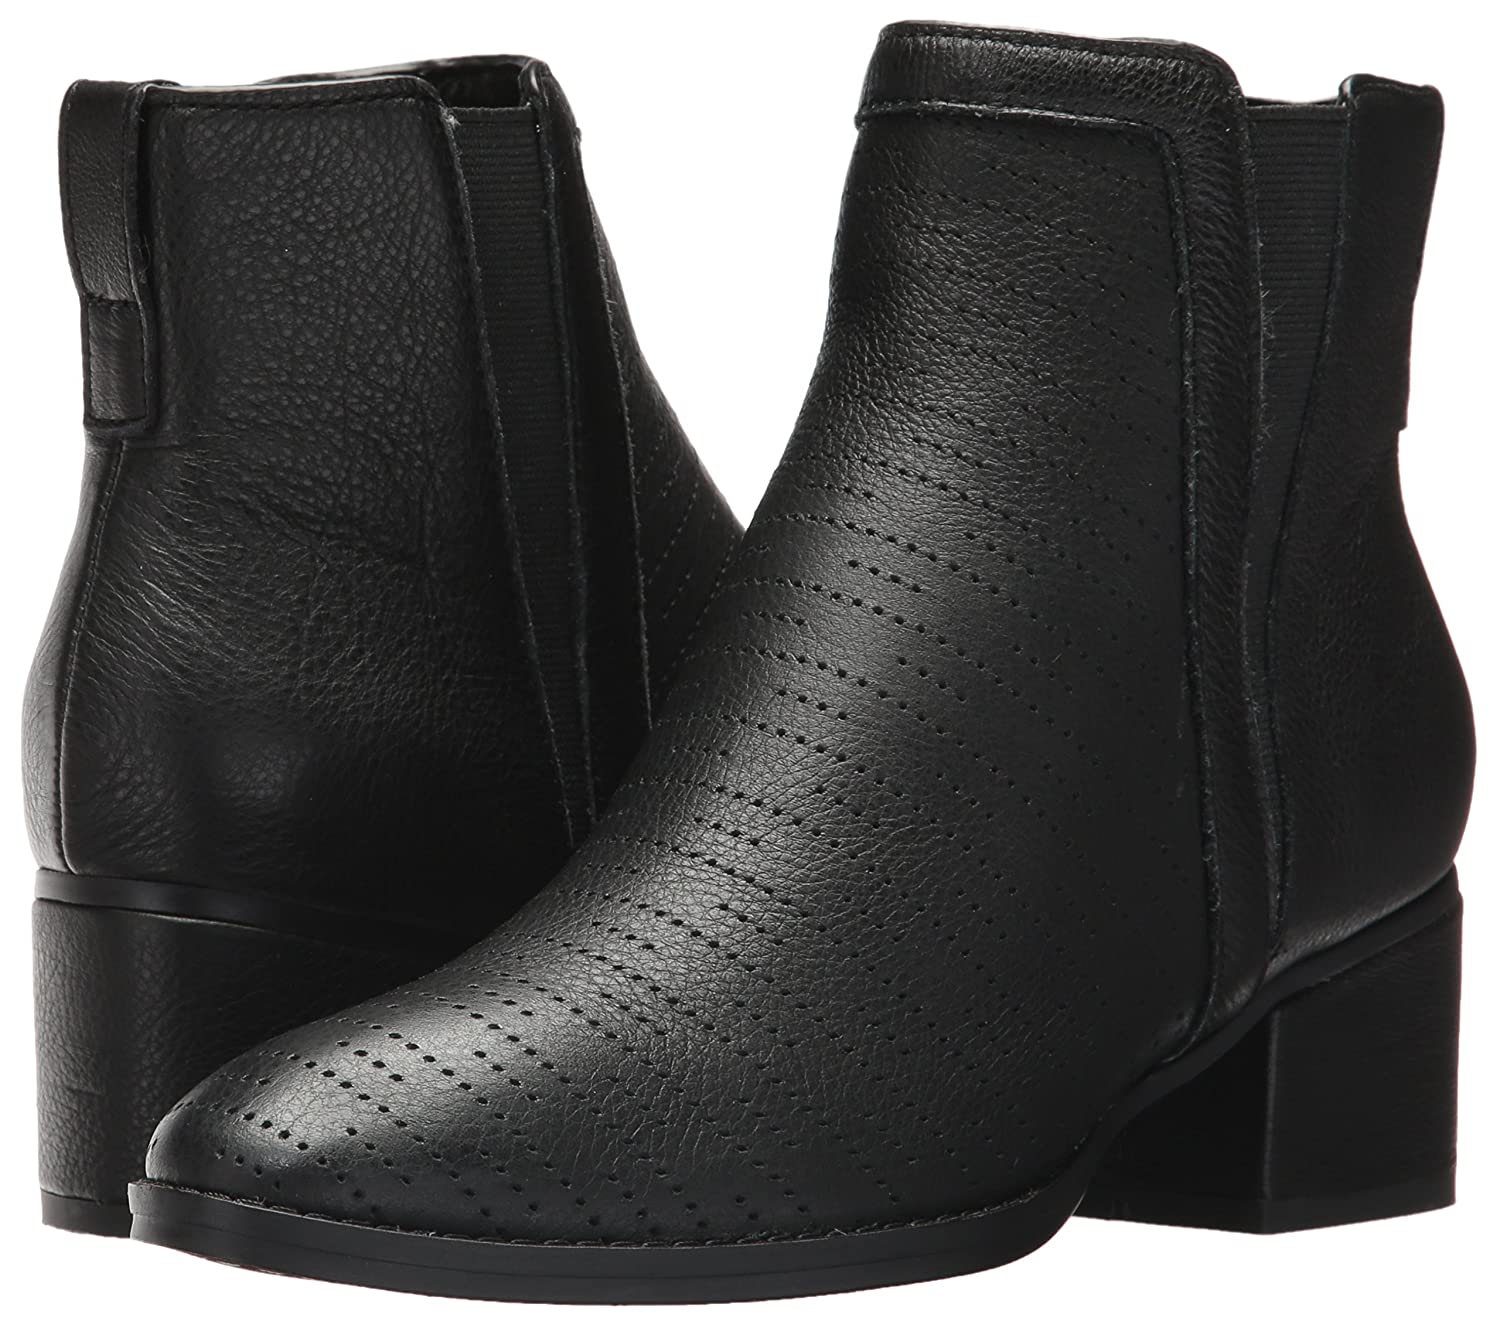 79d5f2ee3568 Amazon.com | Splendid Women's Rosalie II Ankle Boot | Ankle & Bootie